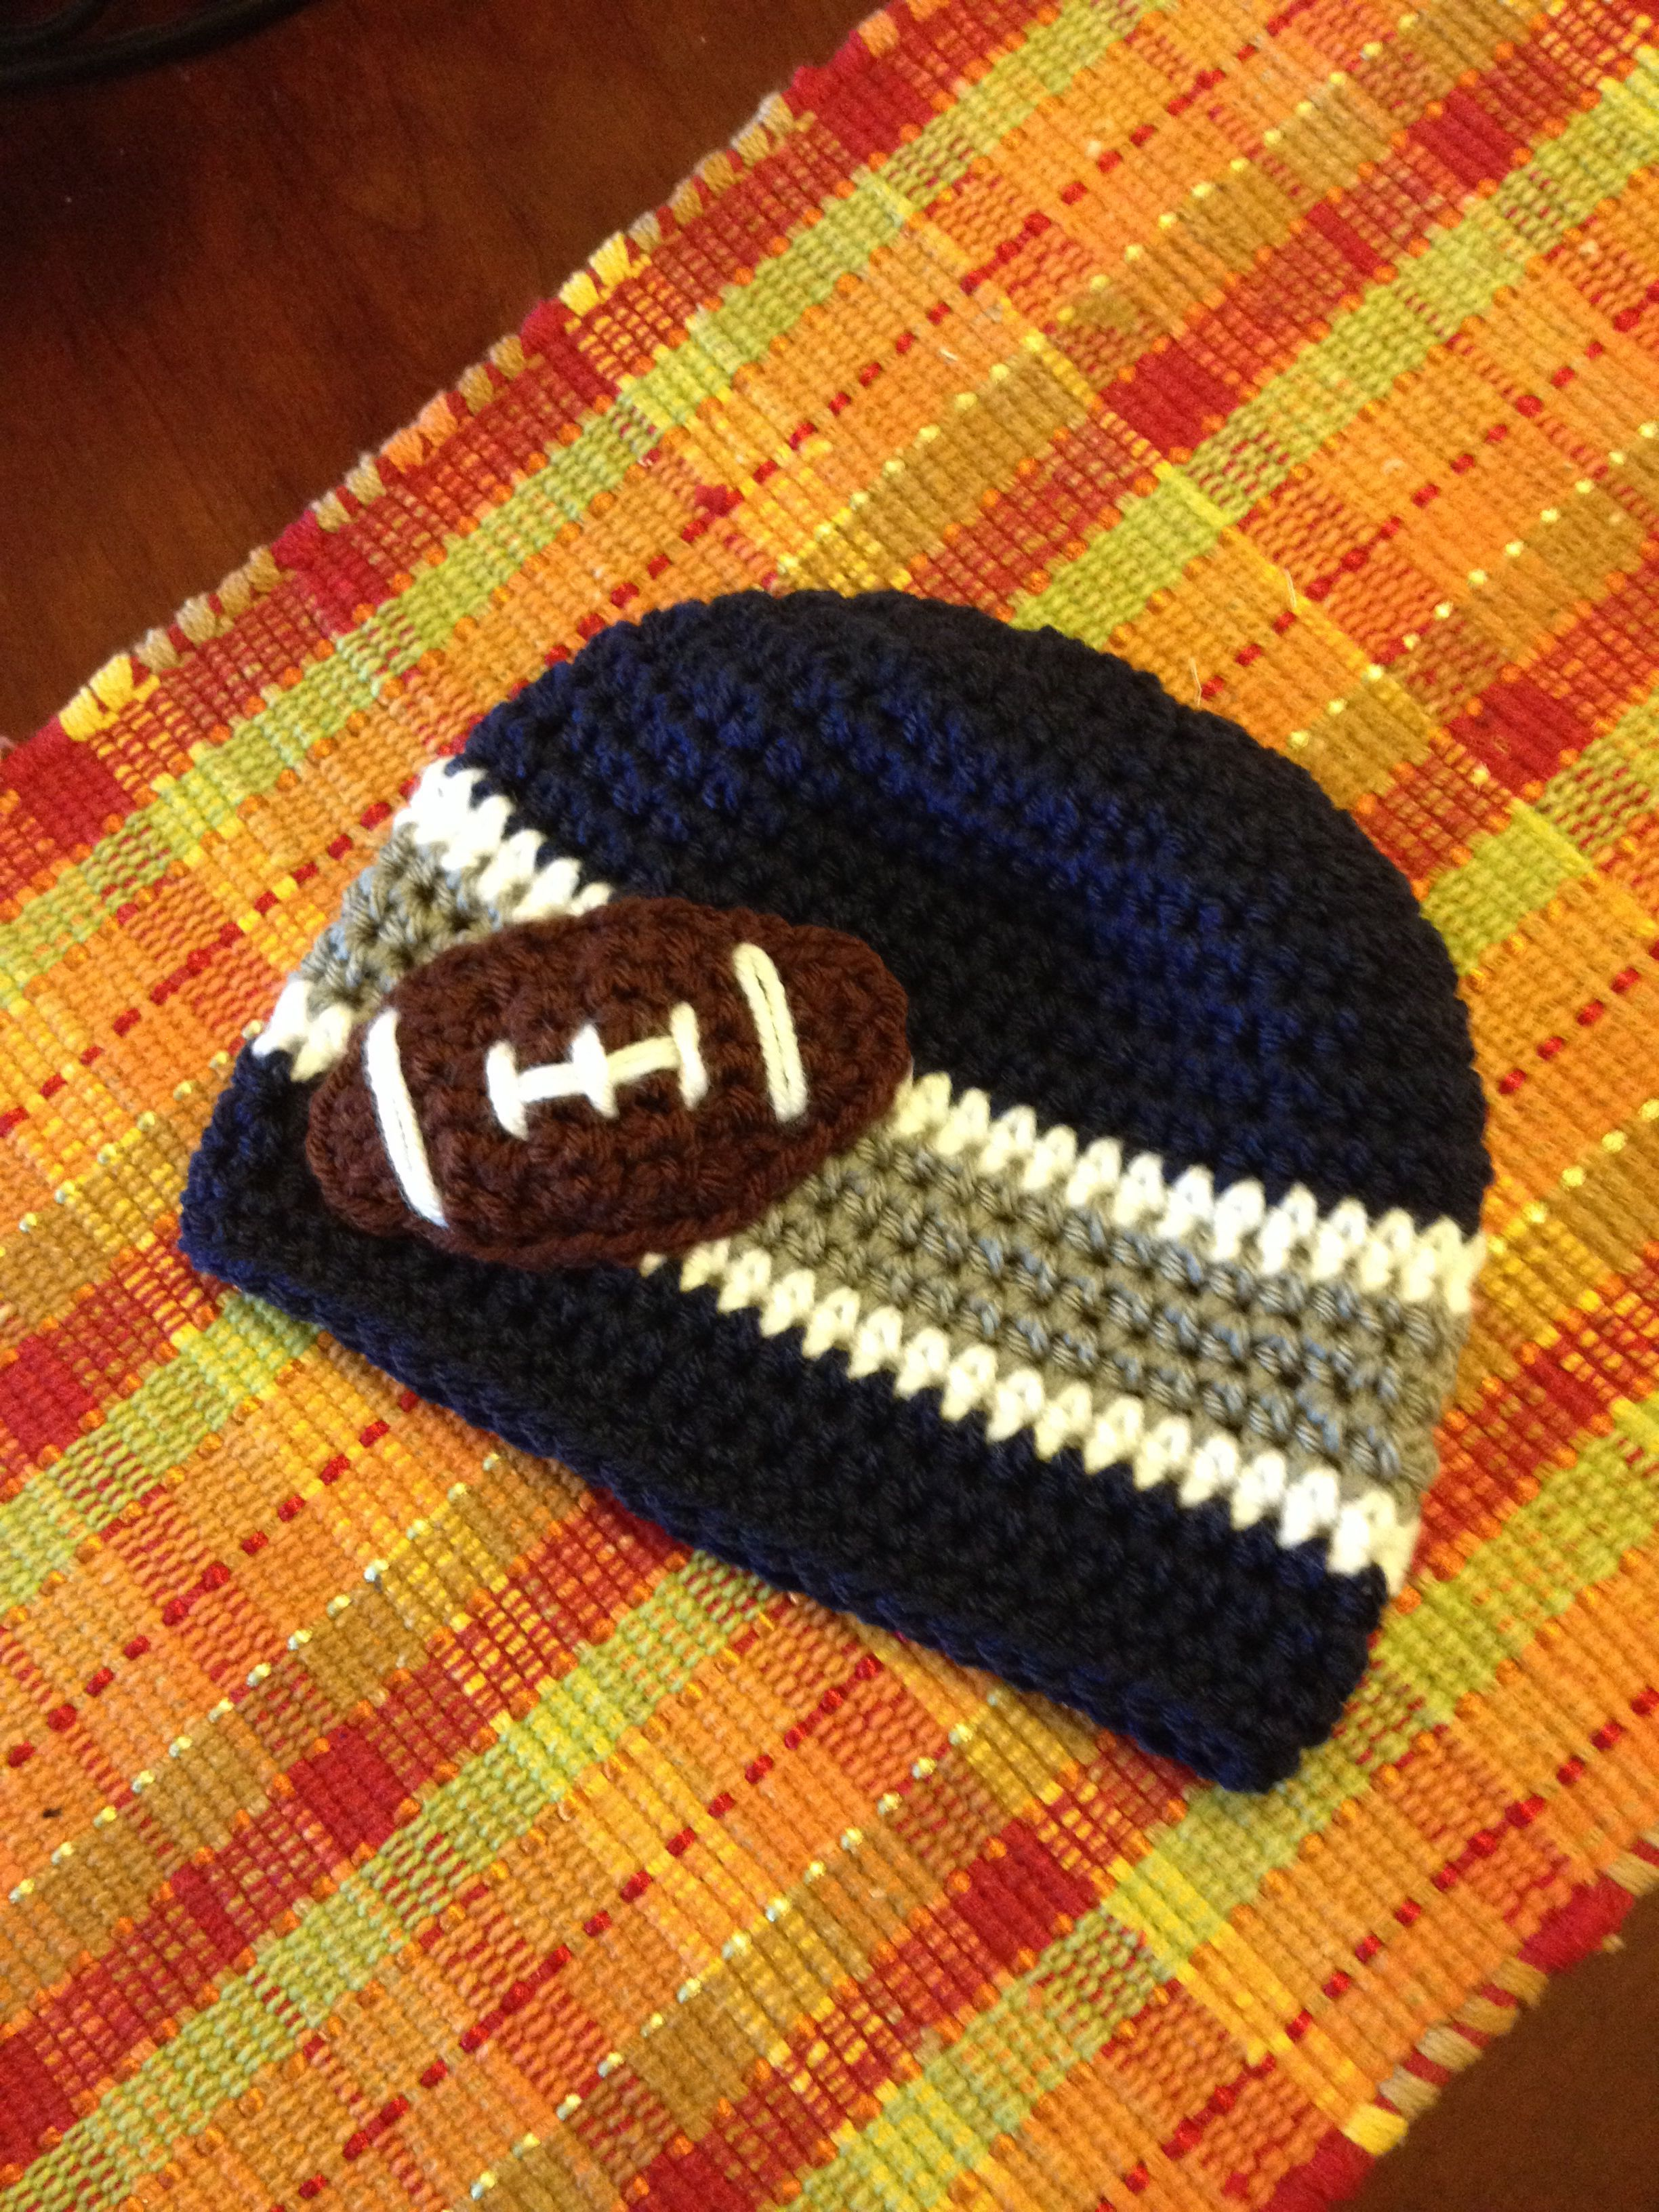 Dallas Cowboys Knit Hat Pattern : Dallas Cowboys Crochet Hat Sparkling City Crochet! Pinterest Cowboy cro...